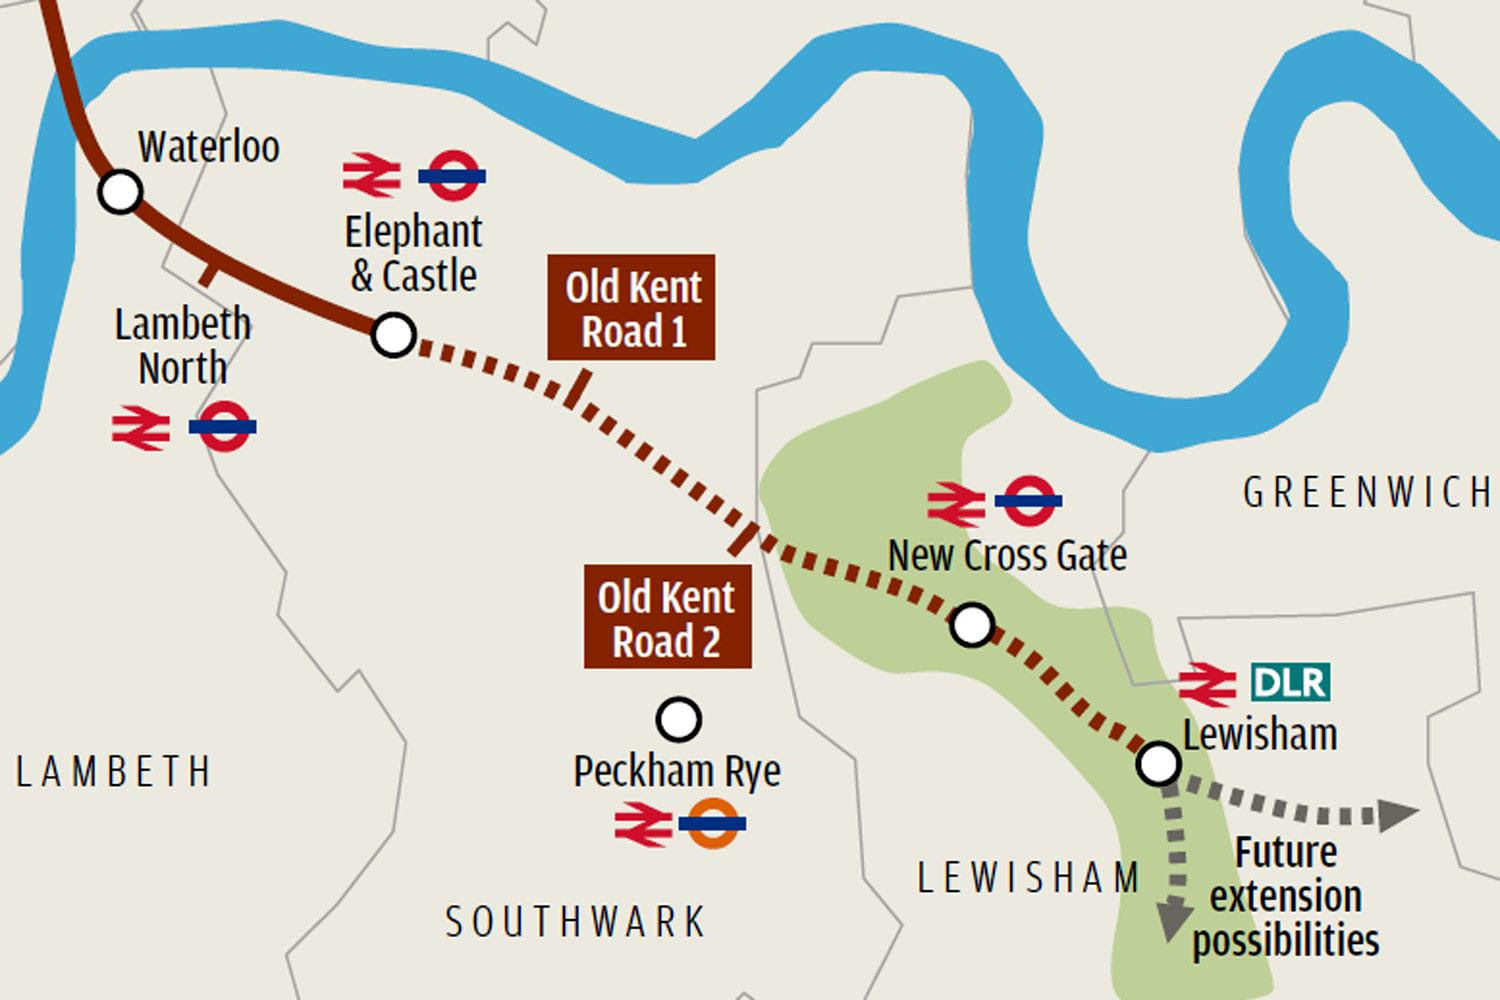 Bakerloo Line Extension Everything You Need To Know About